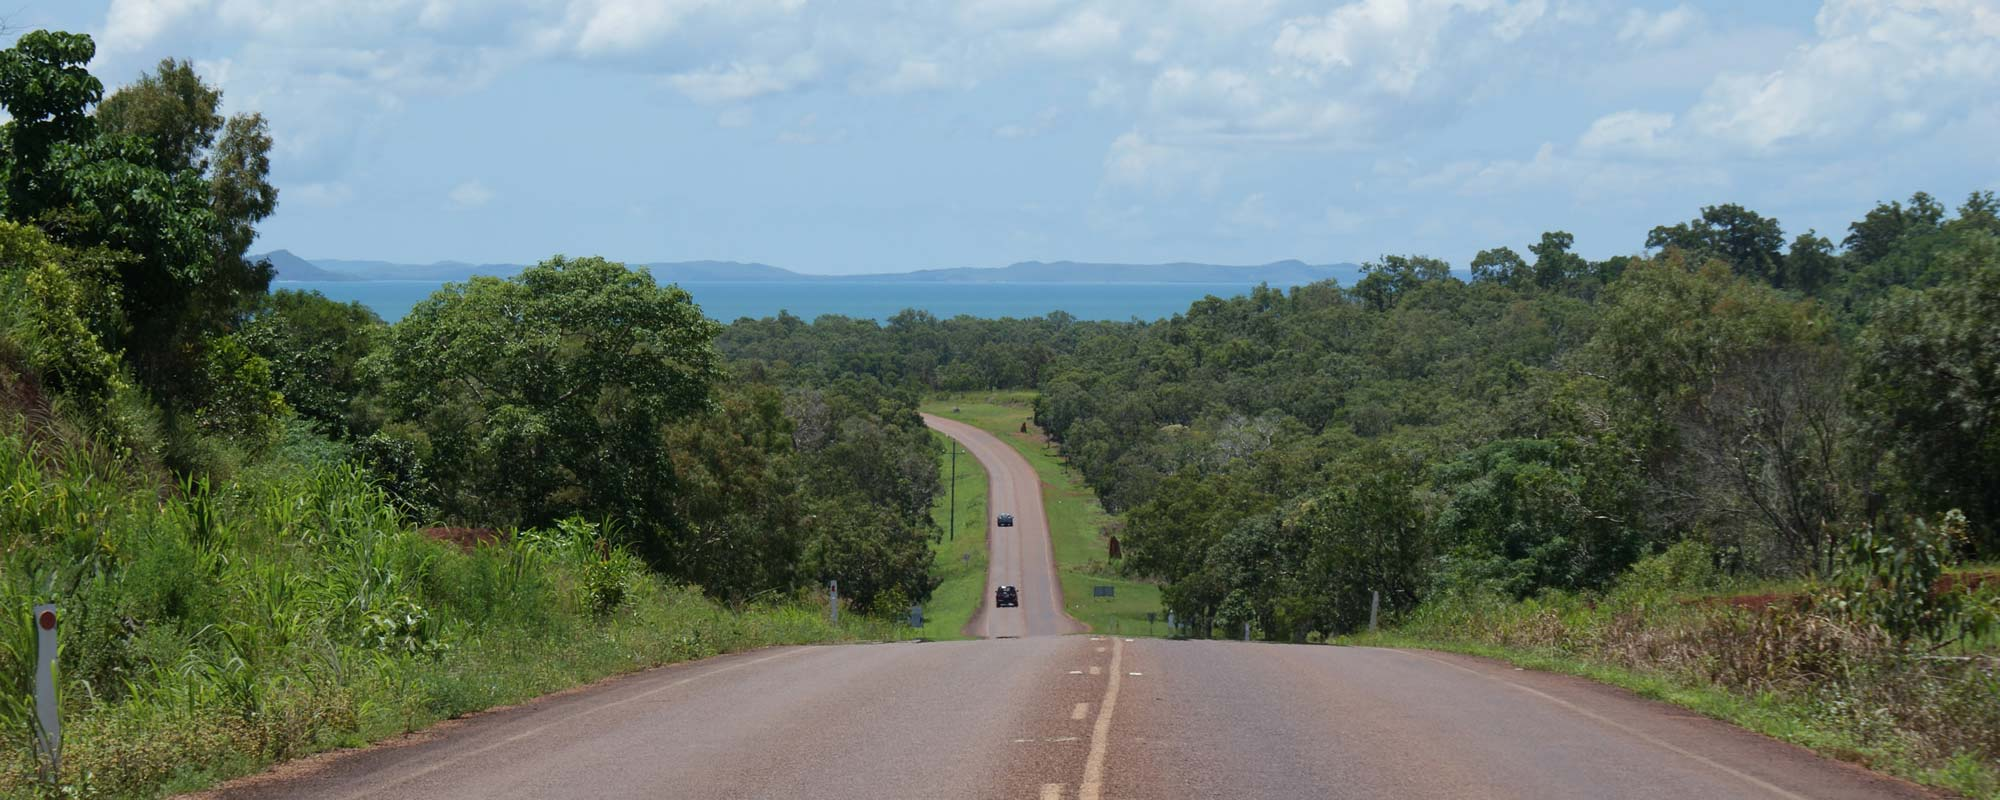 Road to Seisia from Bamaga